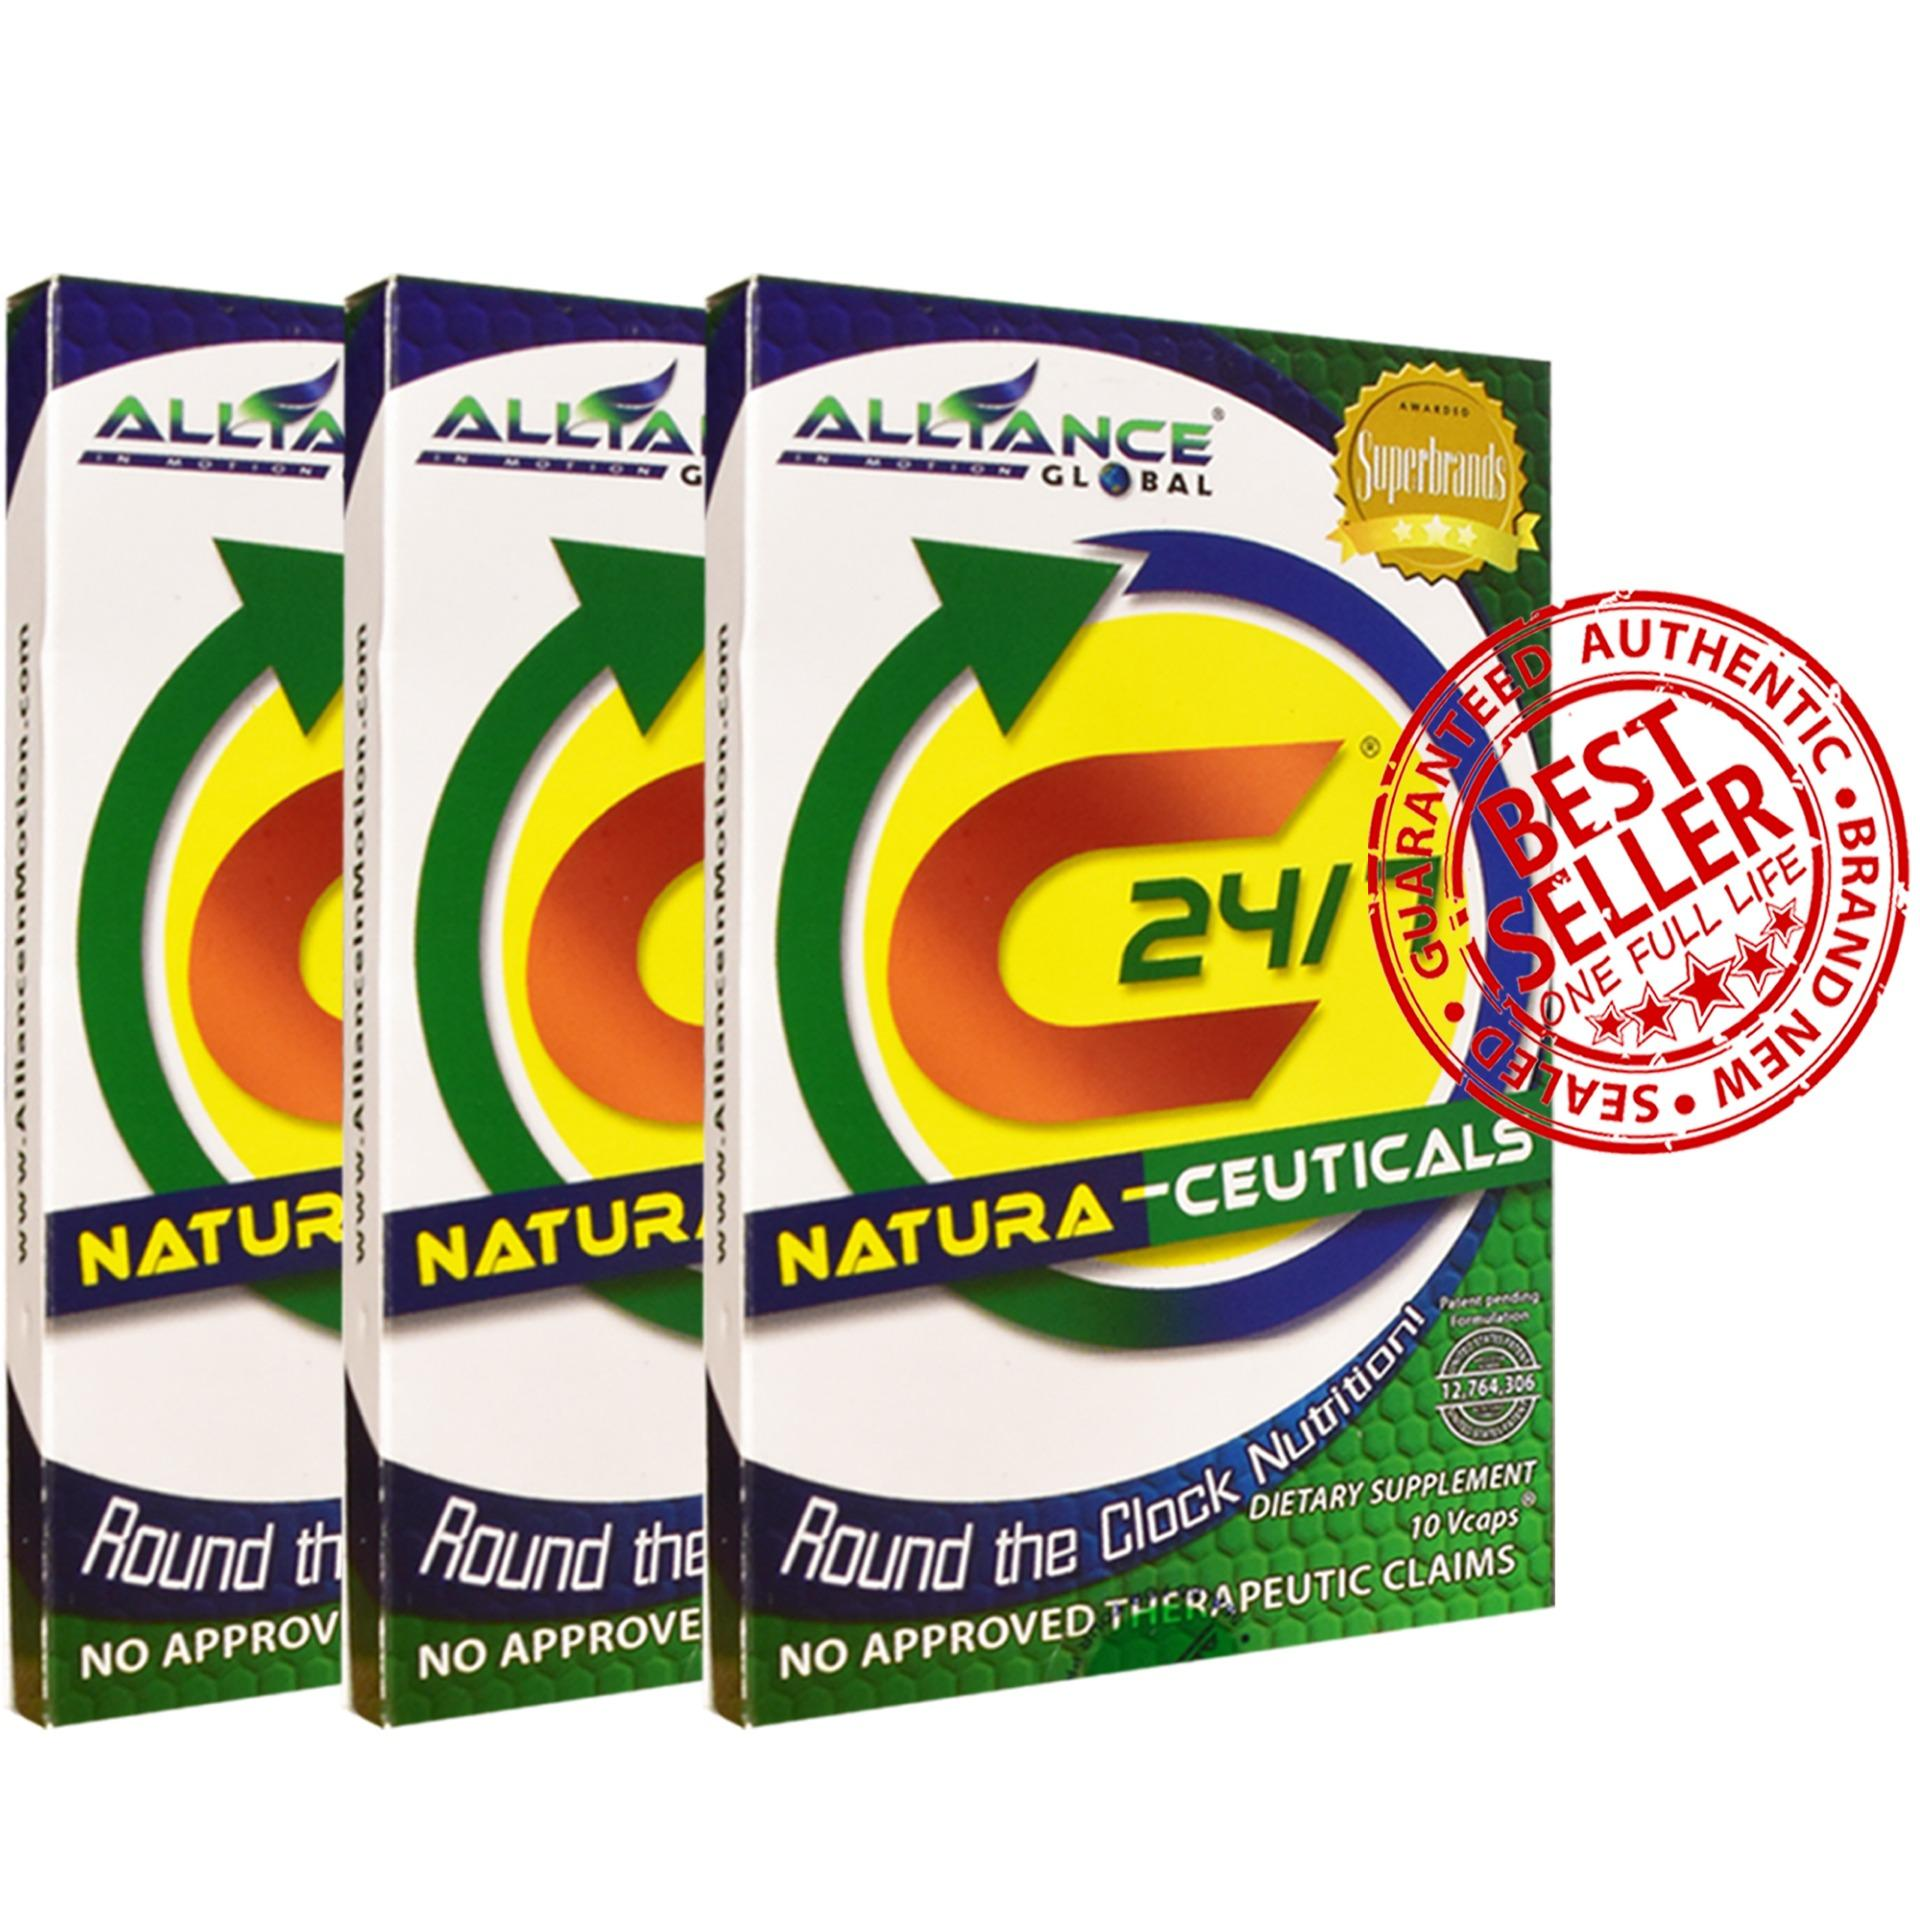 Aim Global C24/7 Naturaceuticals 30 Capsules image